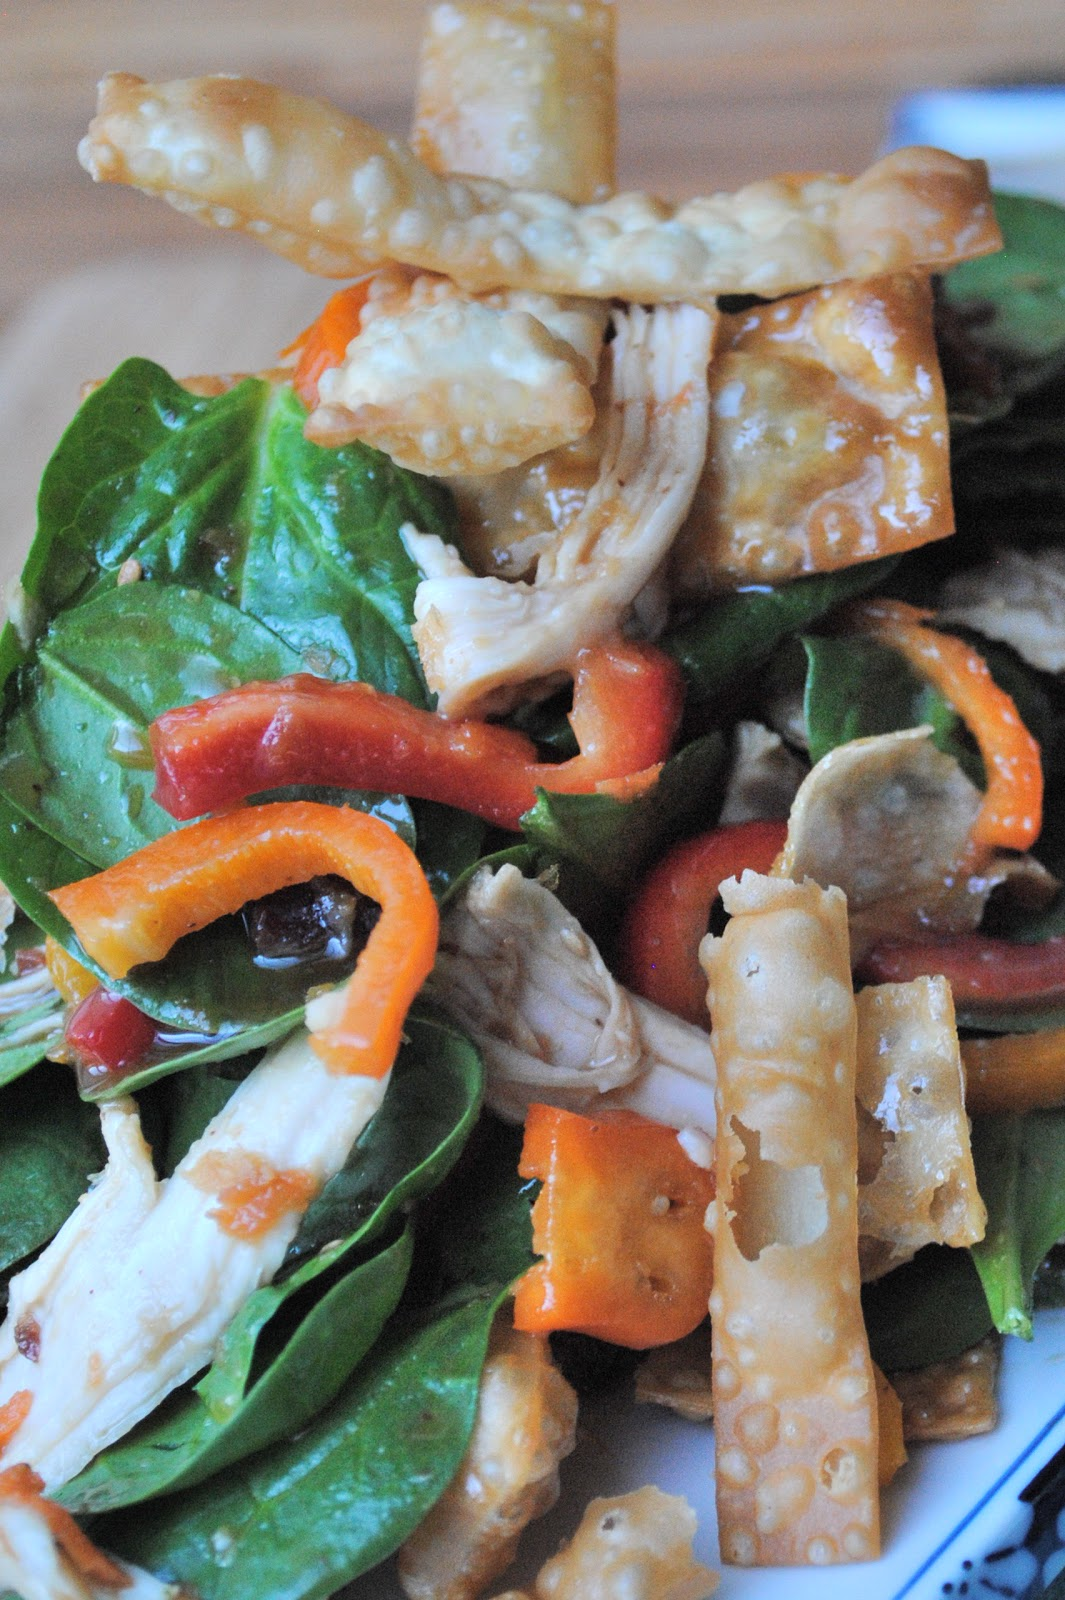 Chicken Wonton Spinach Salad - The Kitchen McCabe